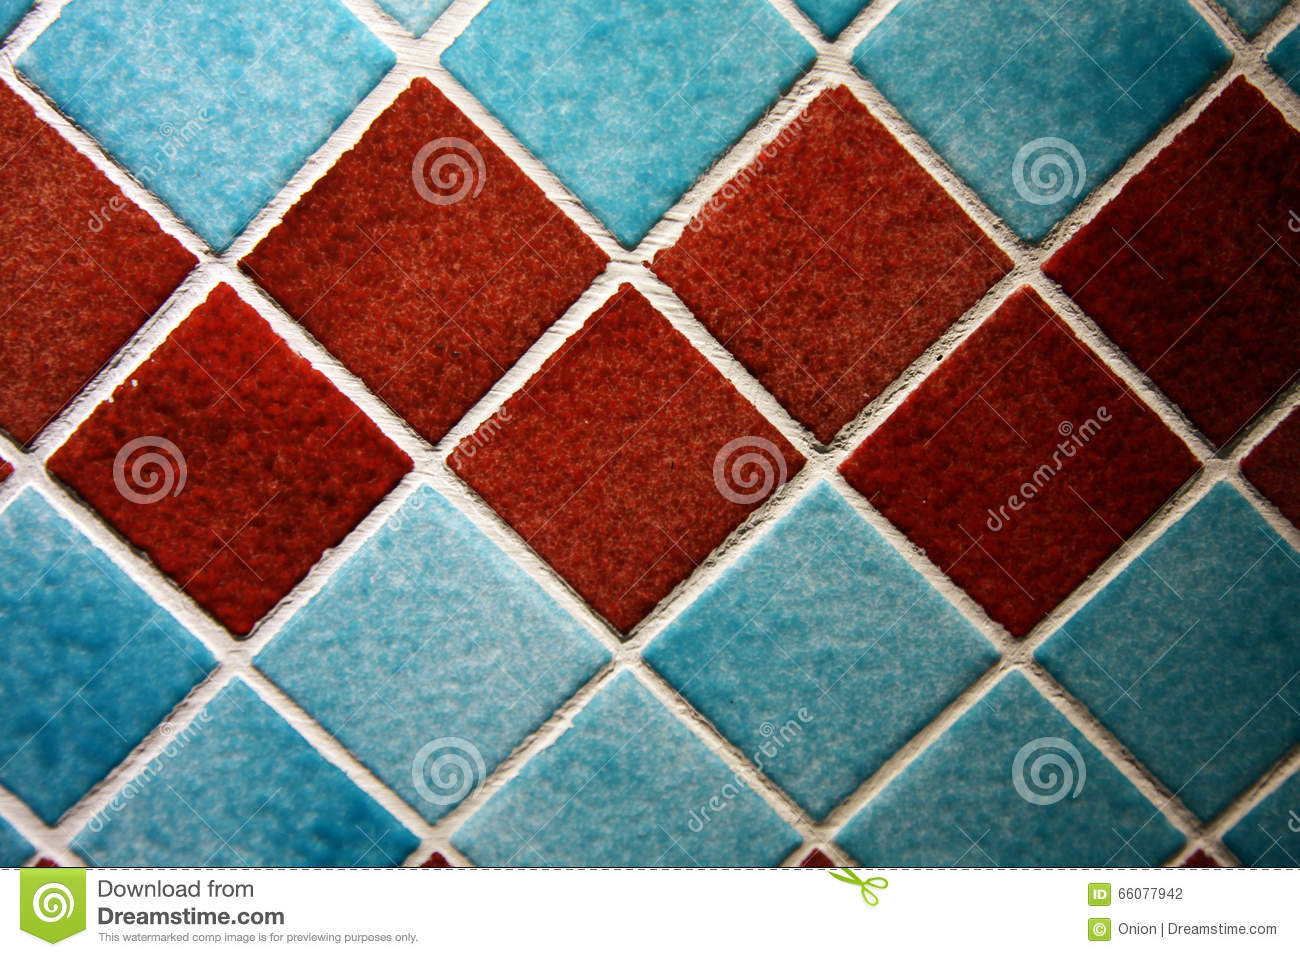 Colorful wall tiles stock photo. Image of pattern, colorful - 66077942